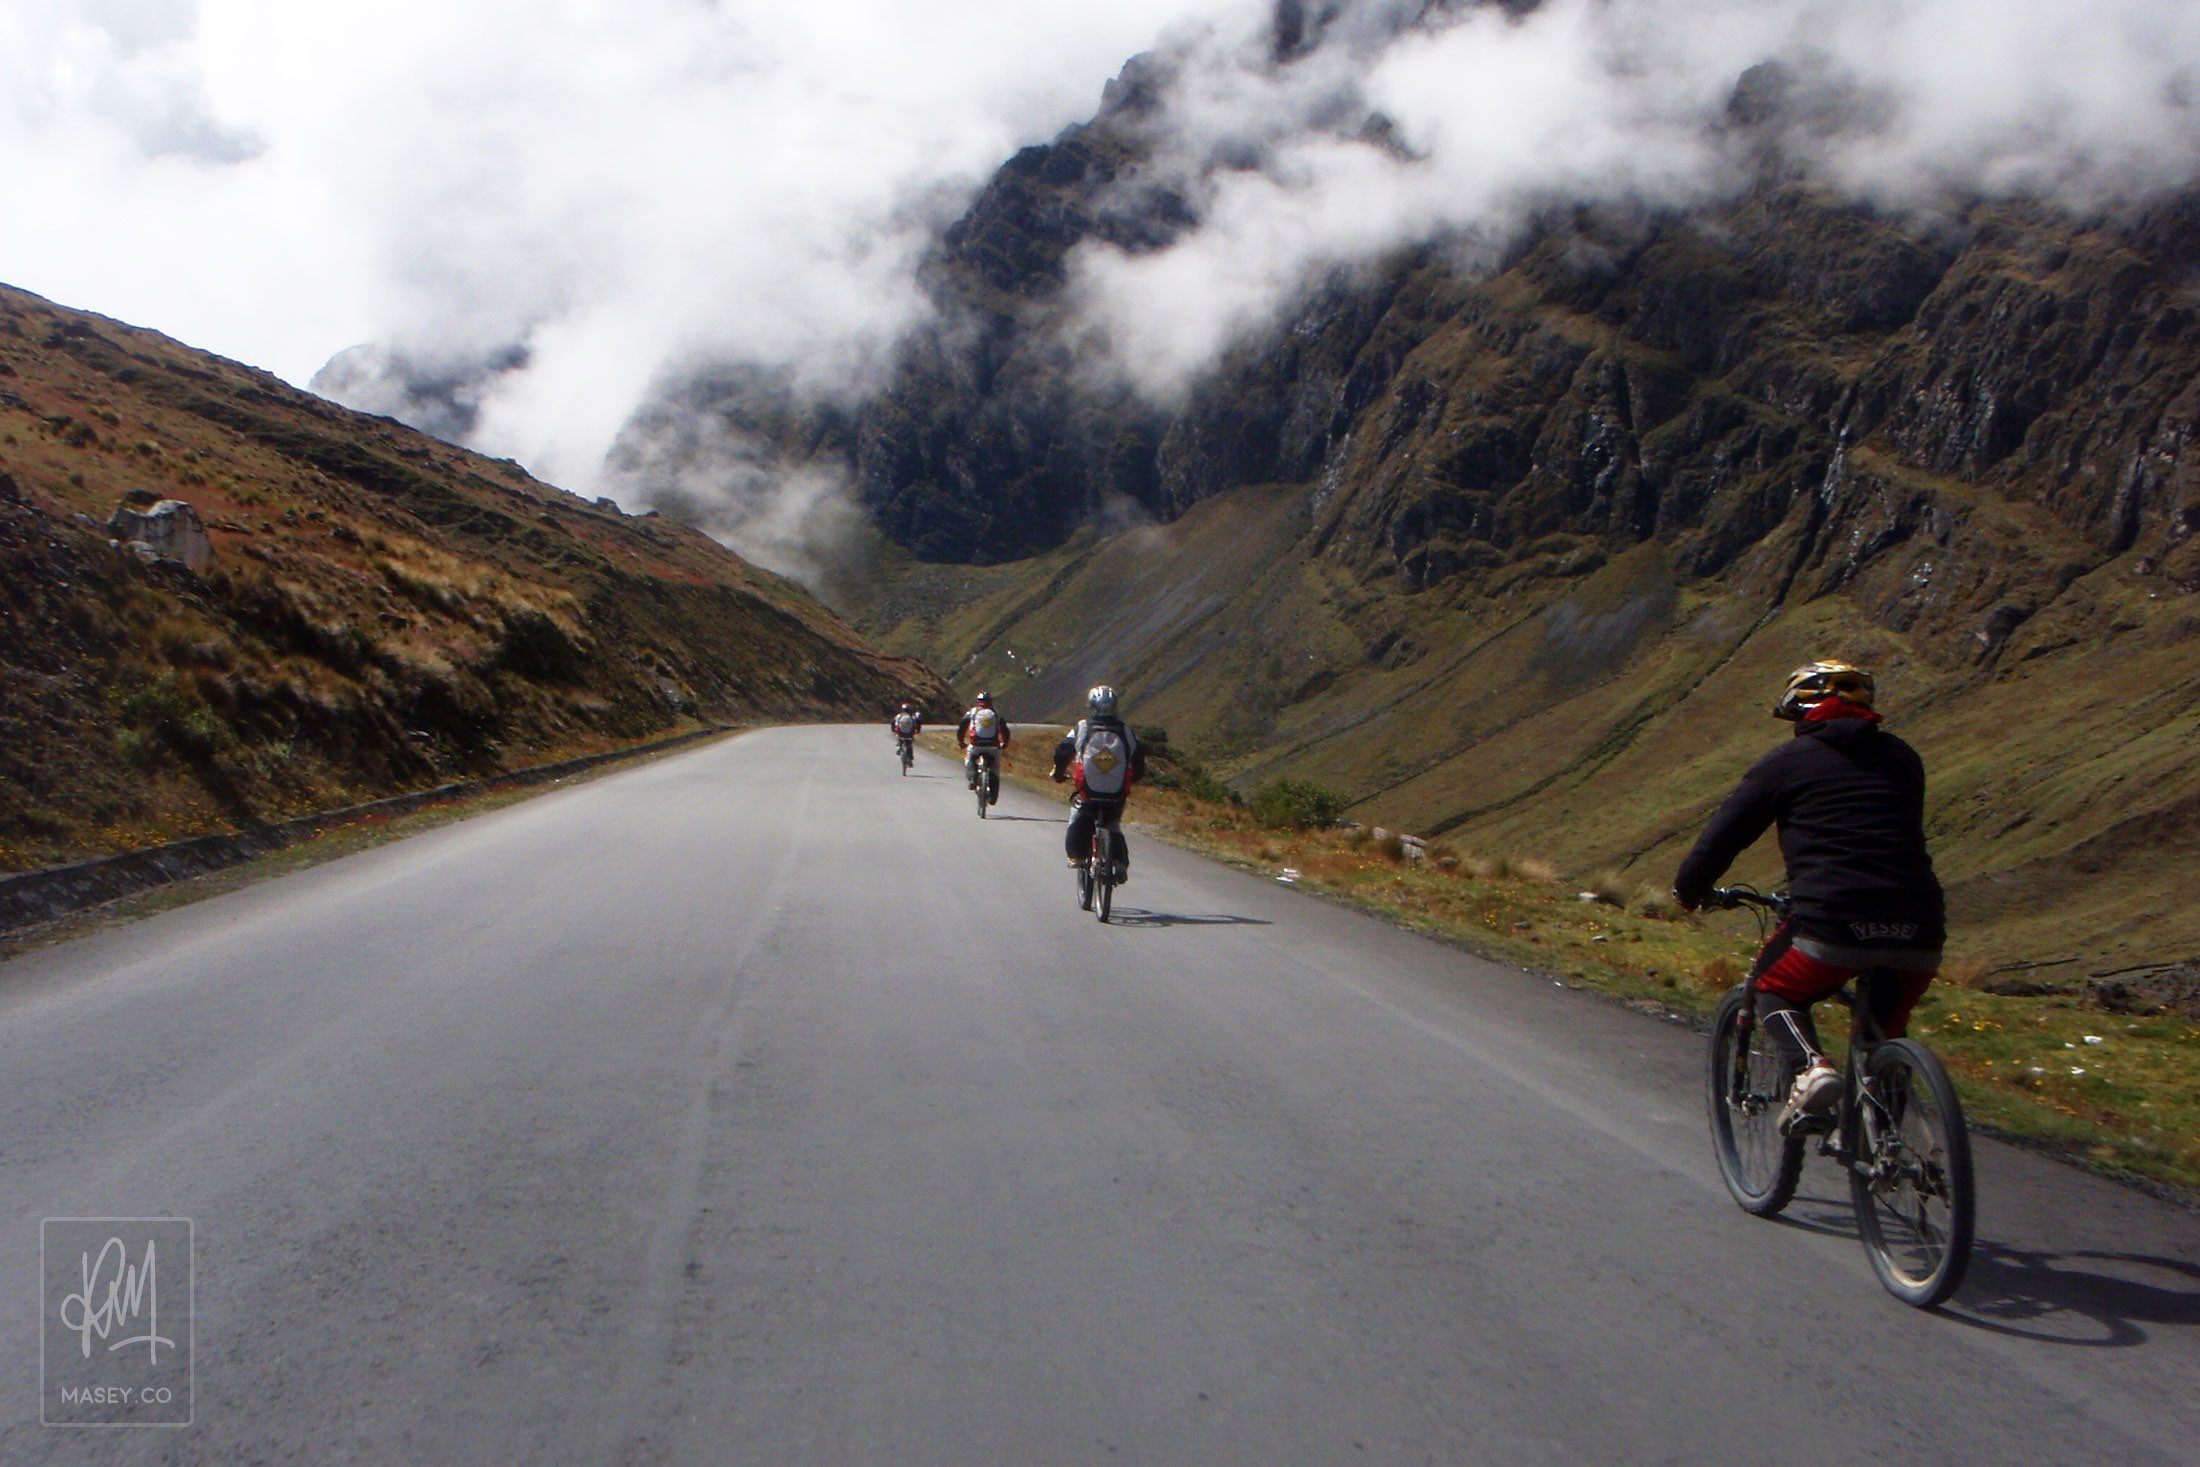 Mountain biking down Bolivia's famed Death Road